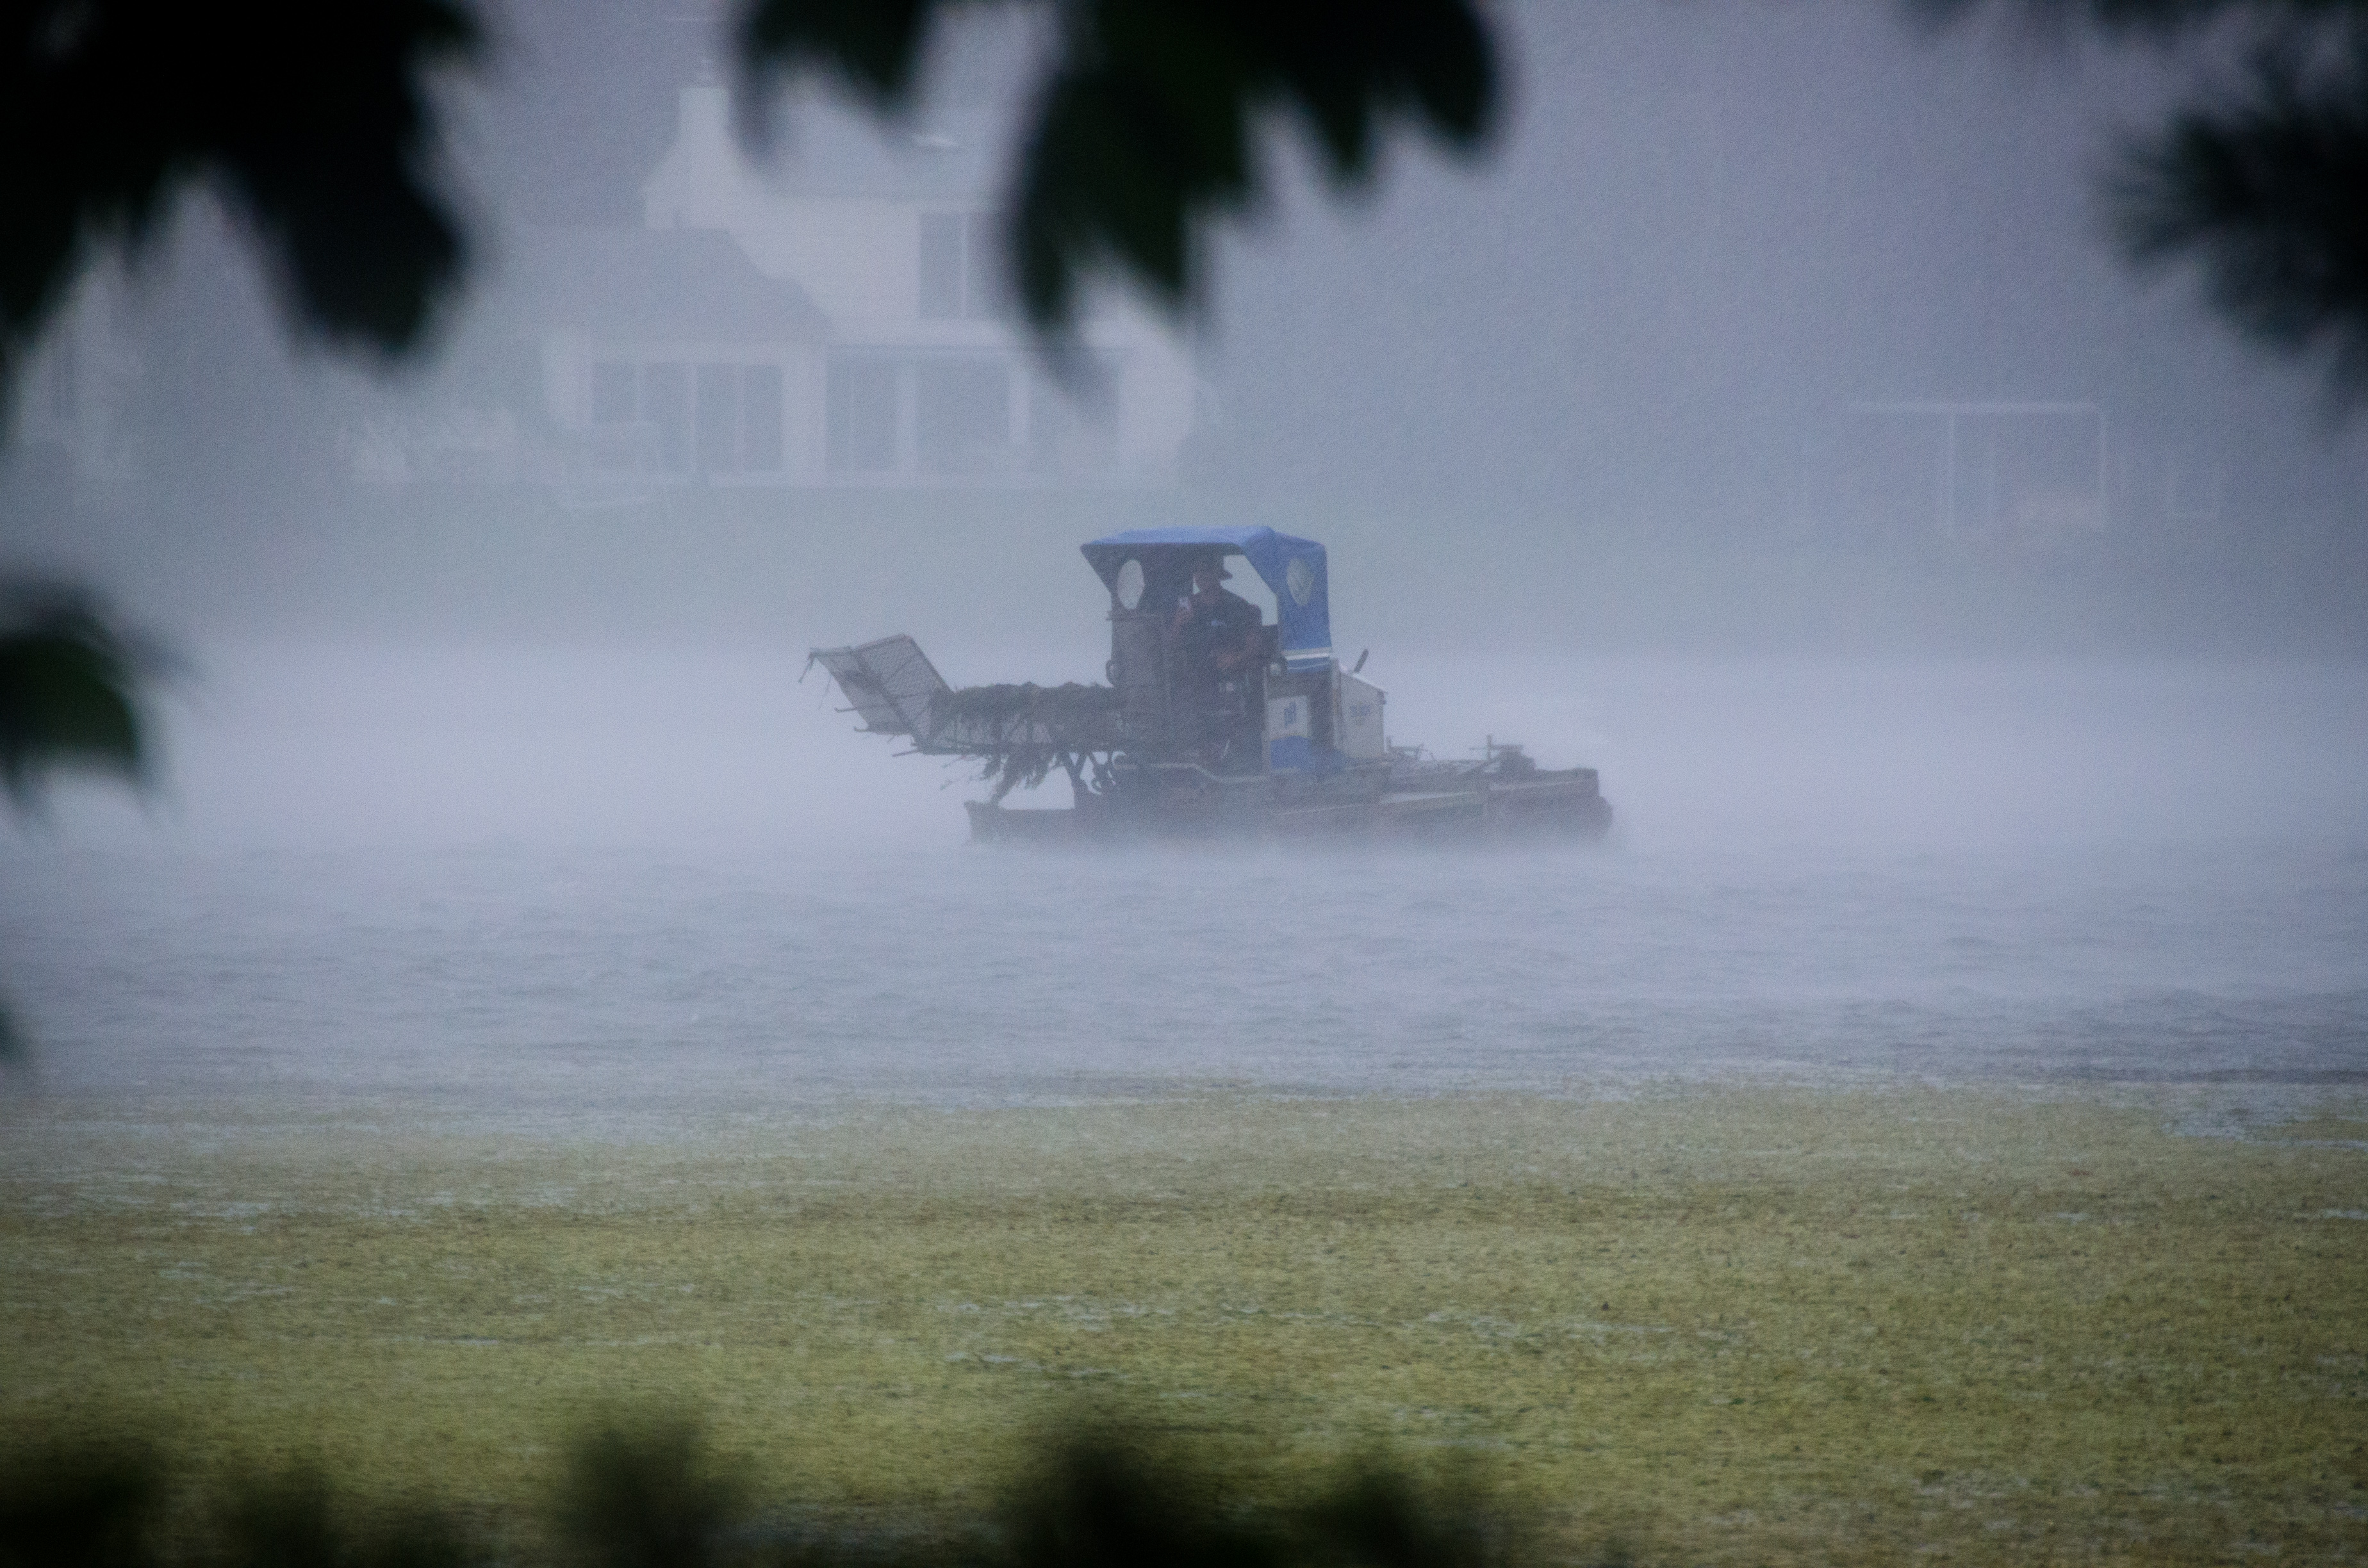 Harvester hurries back to land after a sudden thundershower cracks open the skies. (Photo by Rob Cummings)